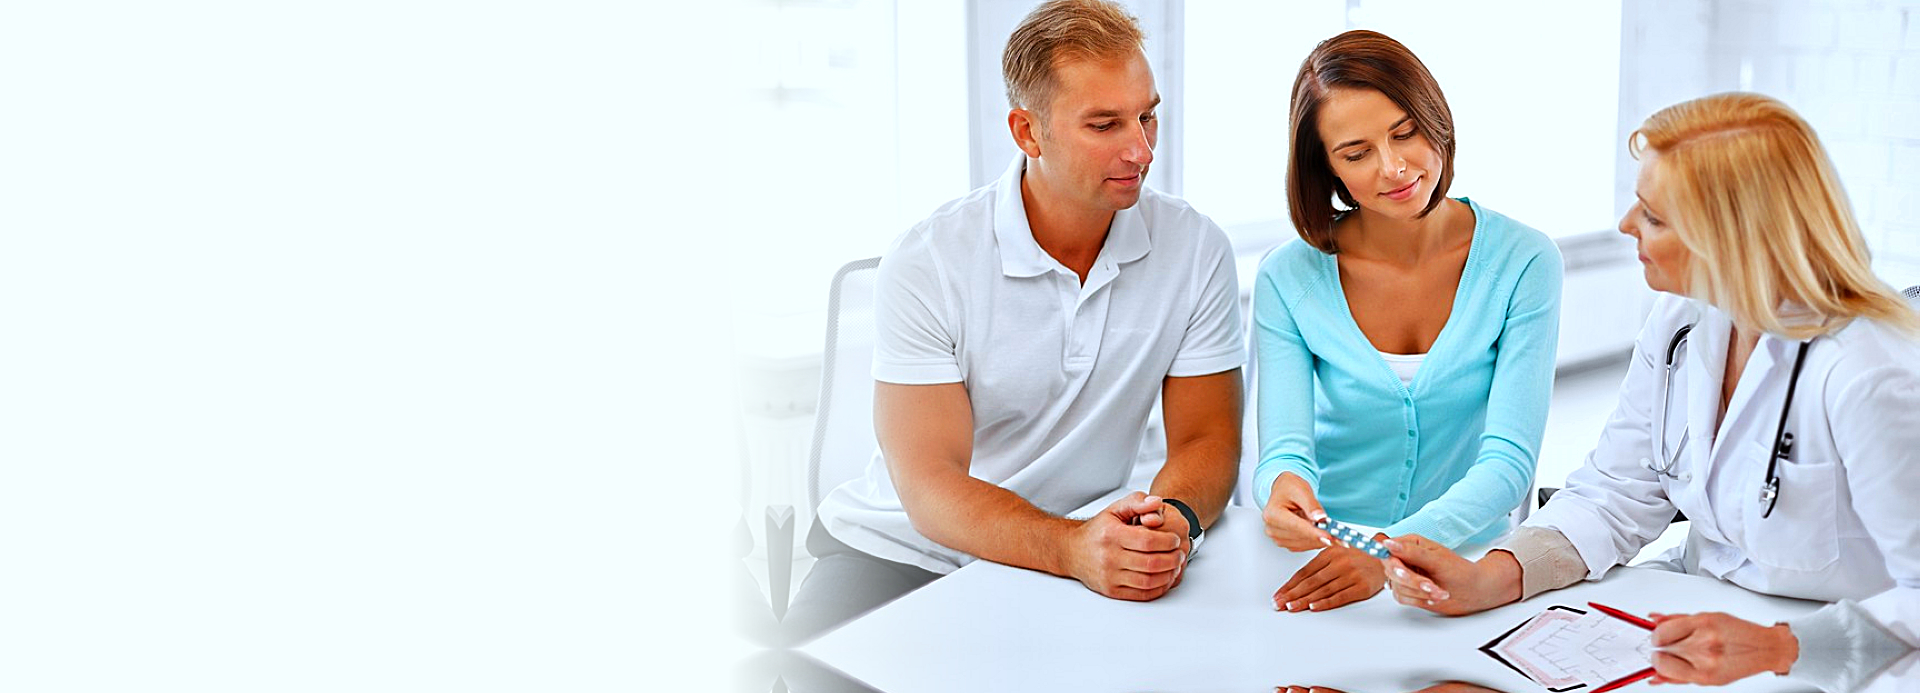 fertility consultation clinic concept